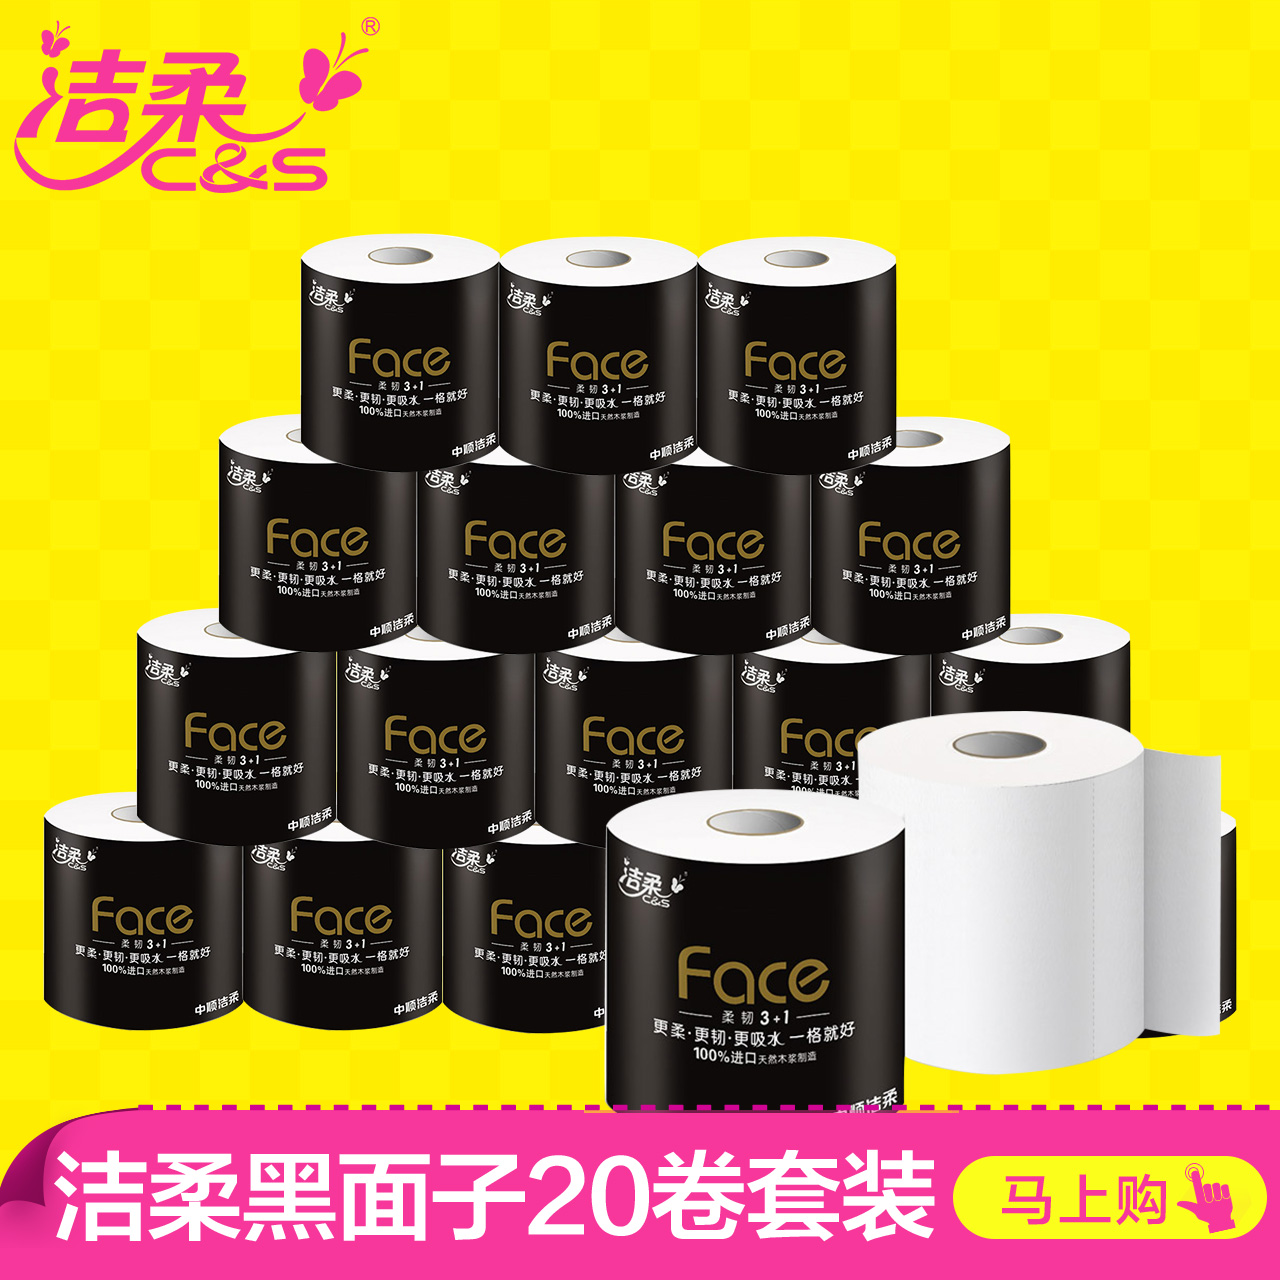 Thick black face clean soft towel roll toilet paper 4 layer 180g/roll * 20 rolls of toilet paper roll of toilet kit